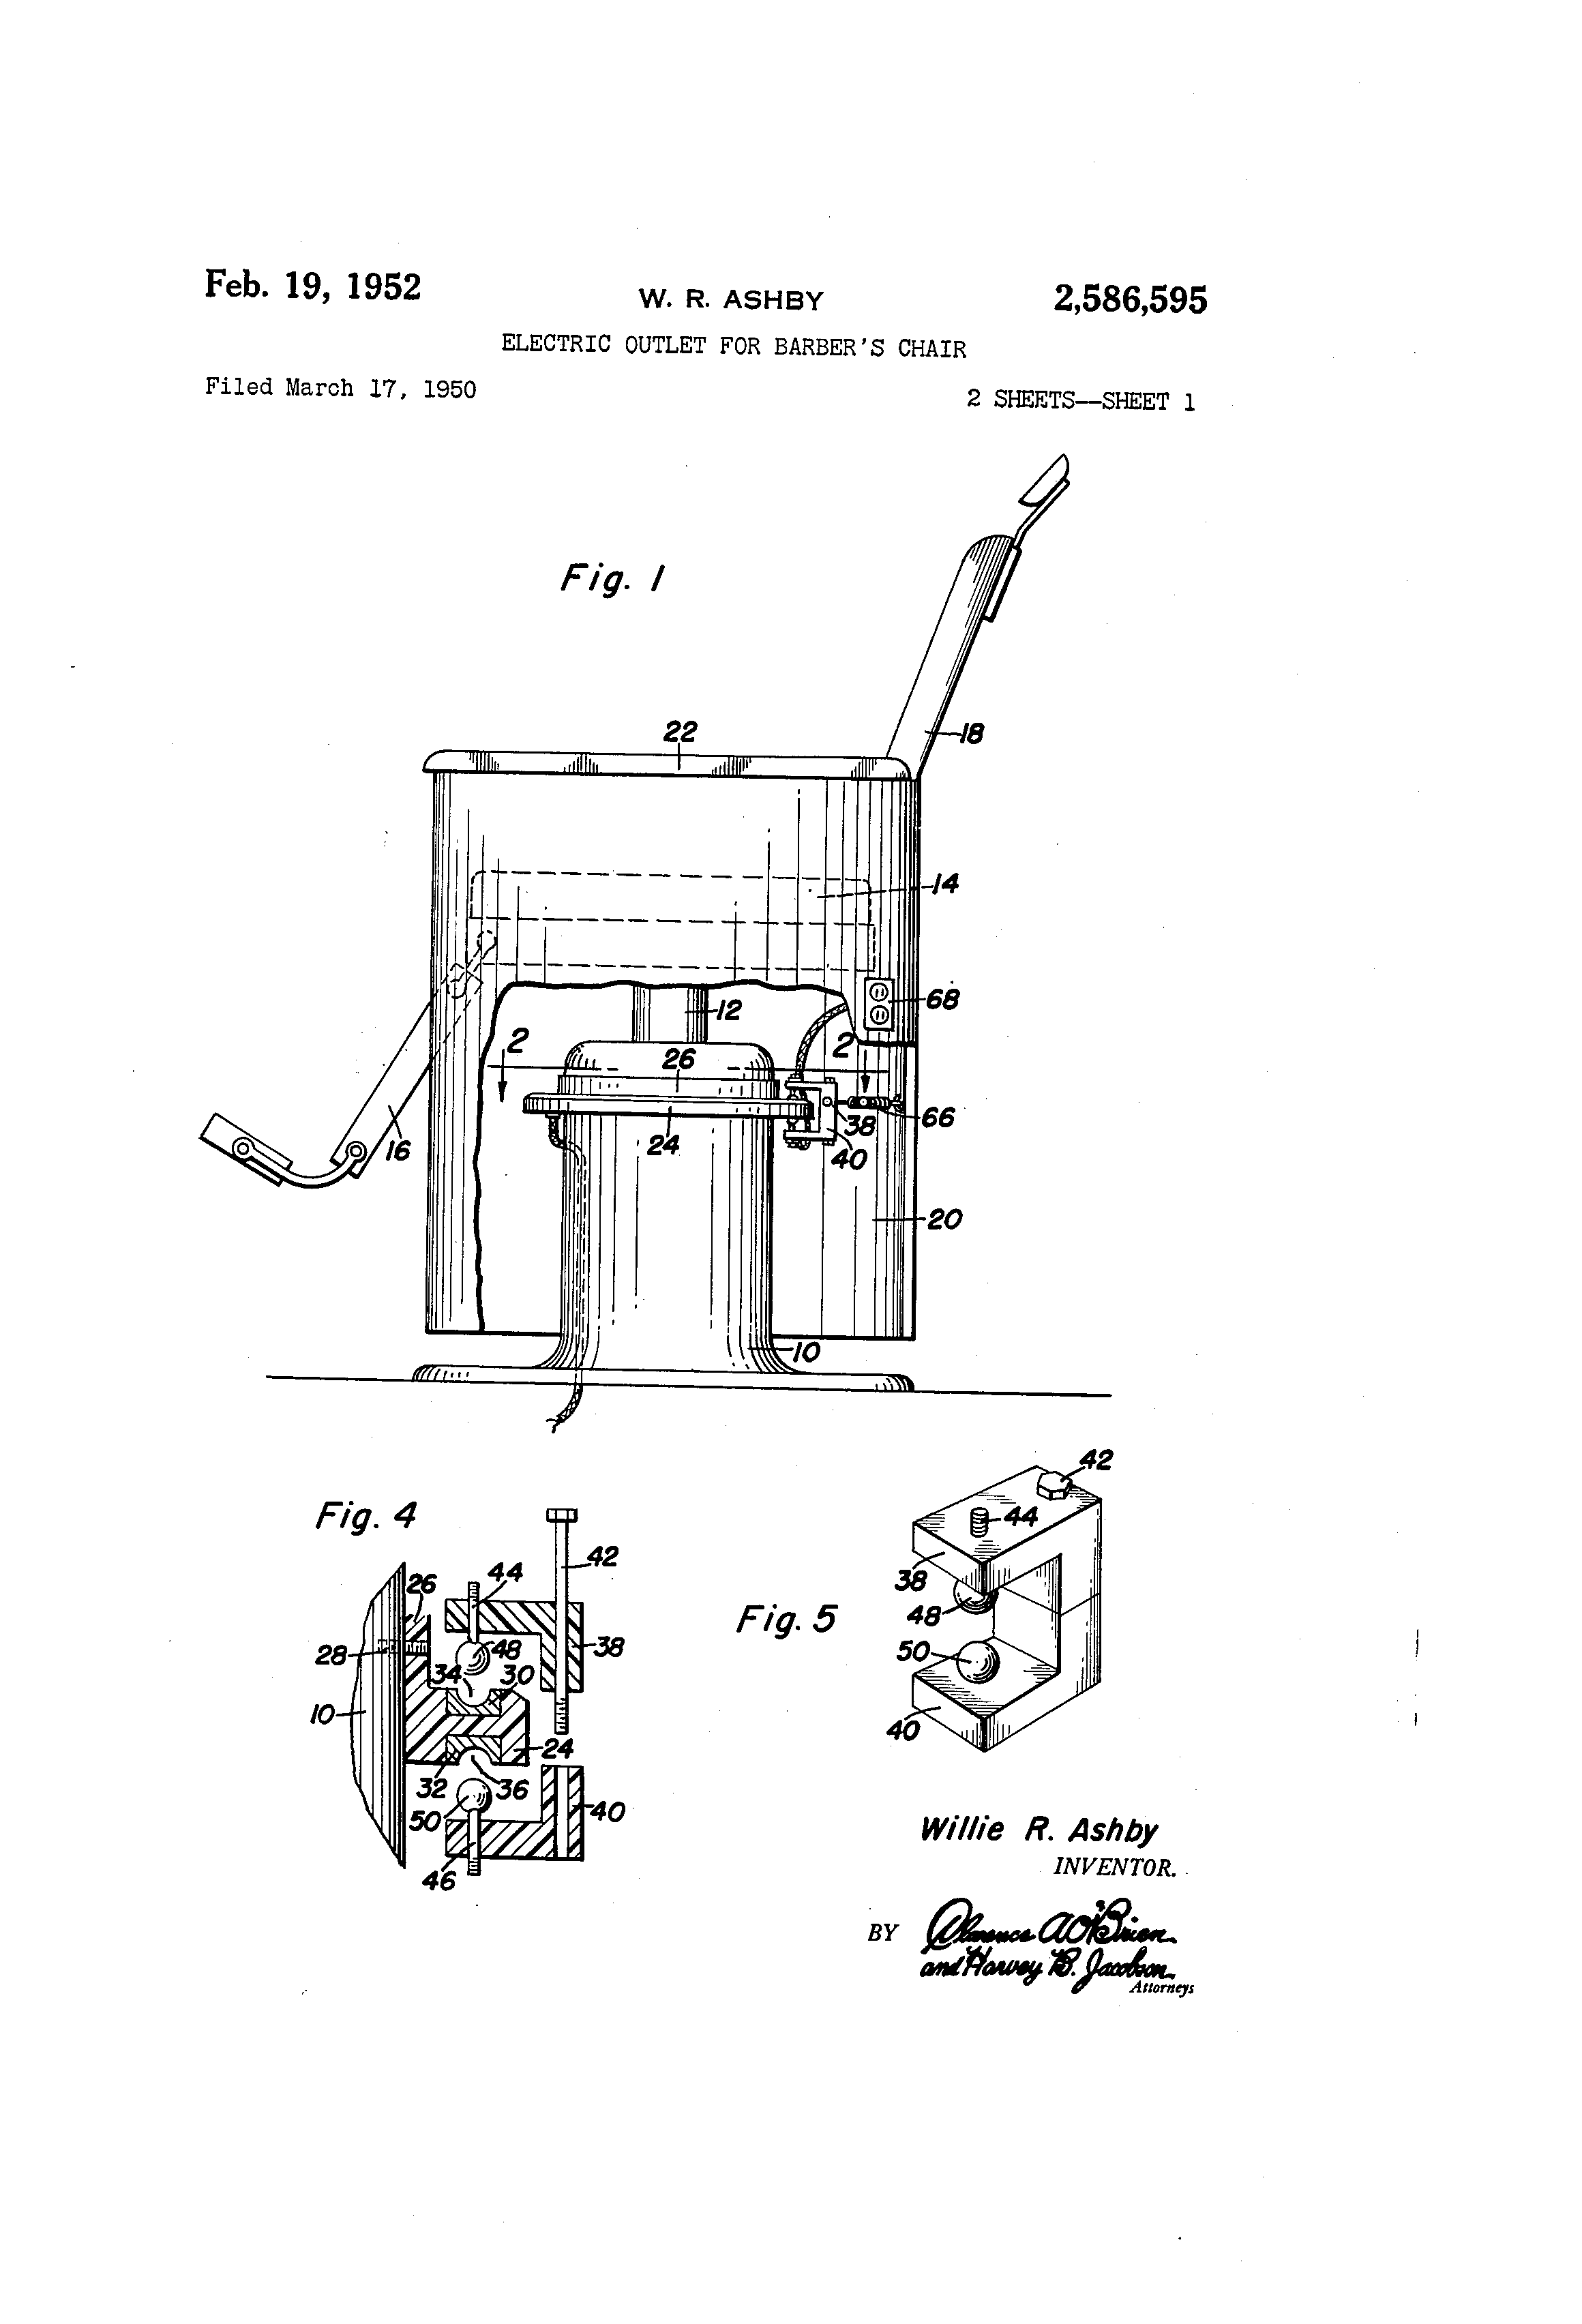 Patent us2586595 electric outlet for barber s chair google patents